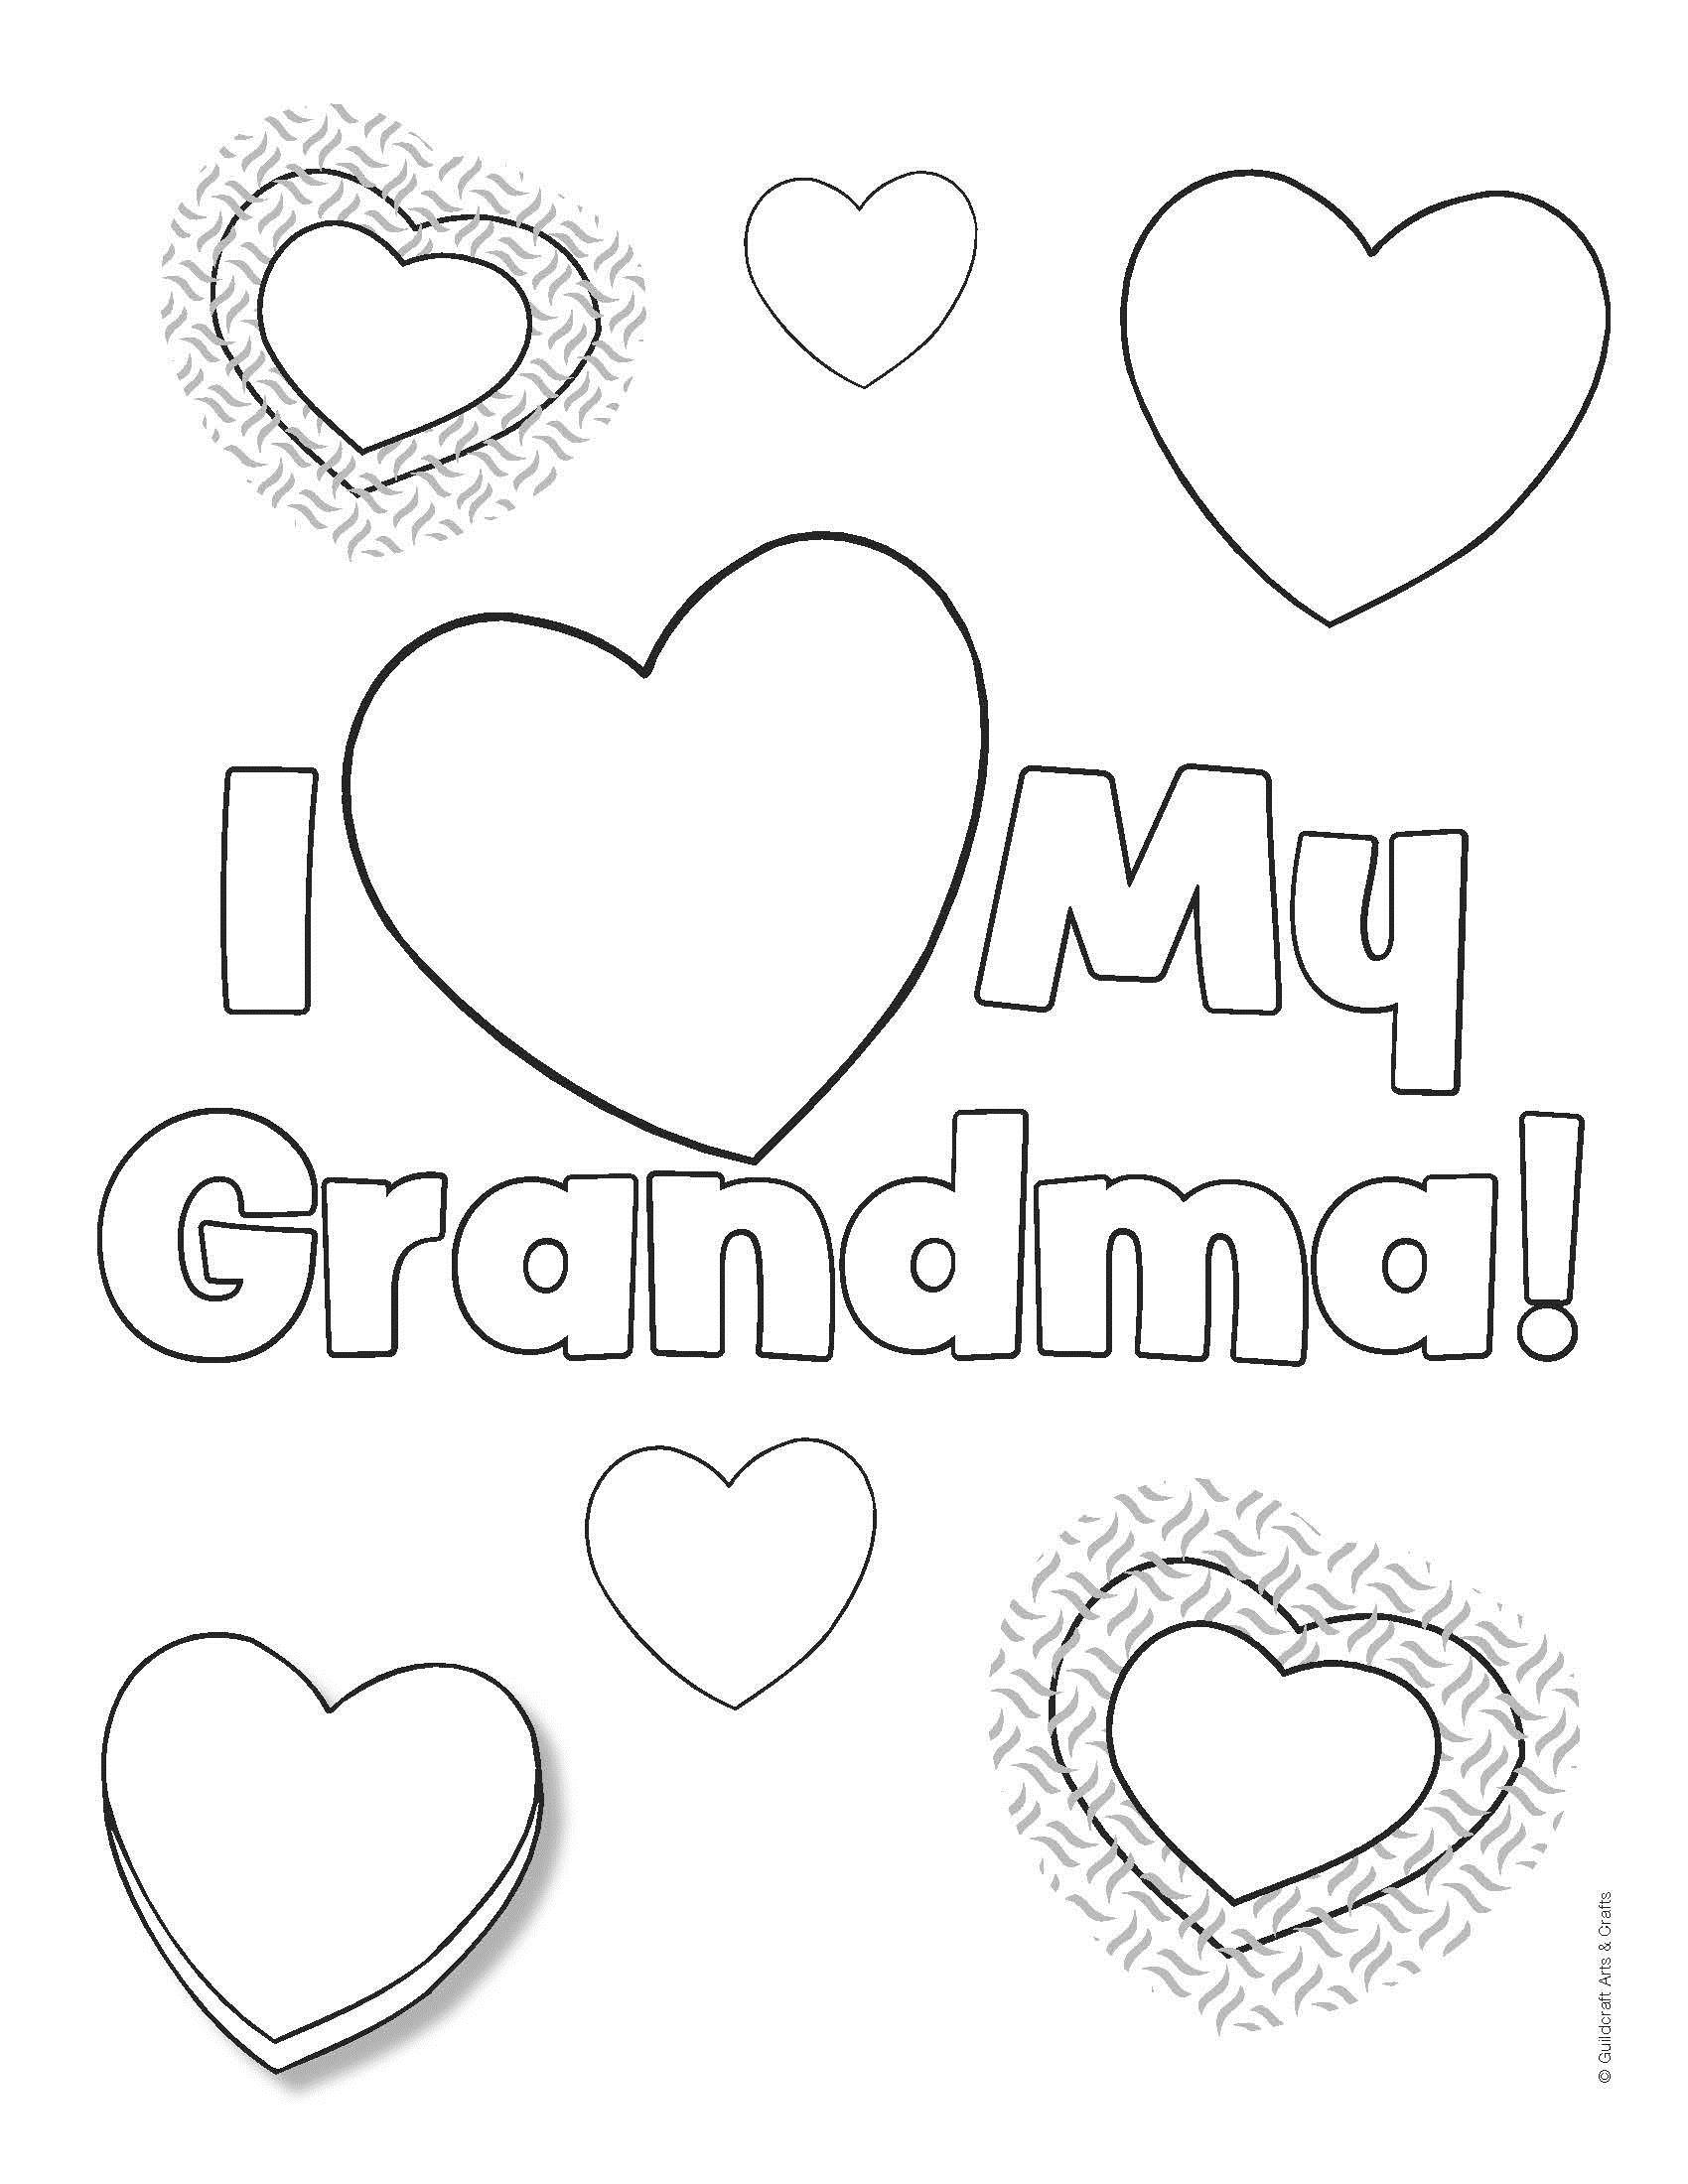 printable coloring birthday cards for grandma ; aed5bddf5dc652ef5d2dc7d22245807d